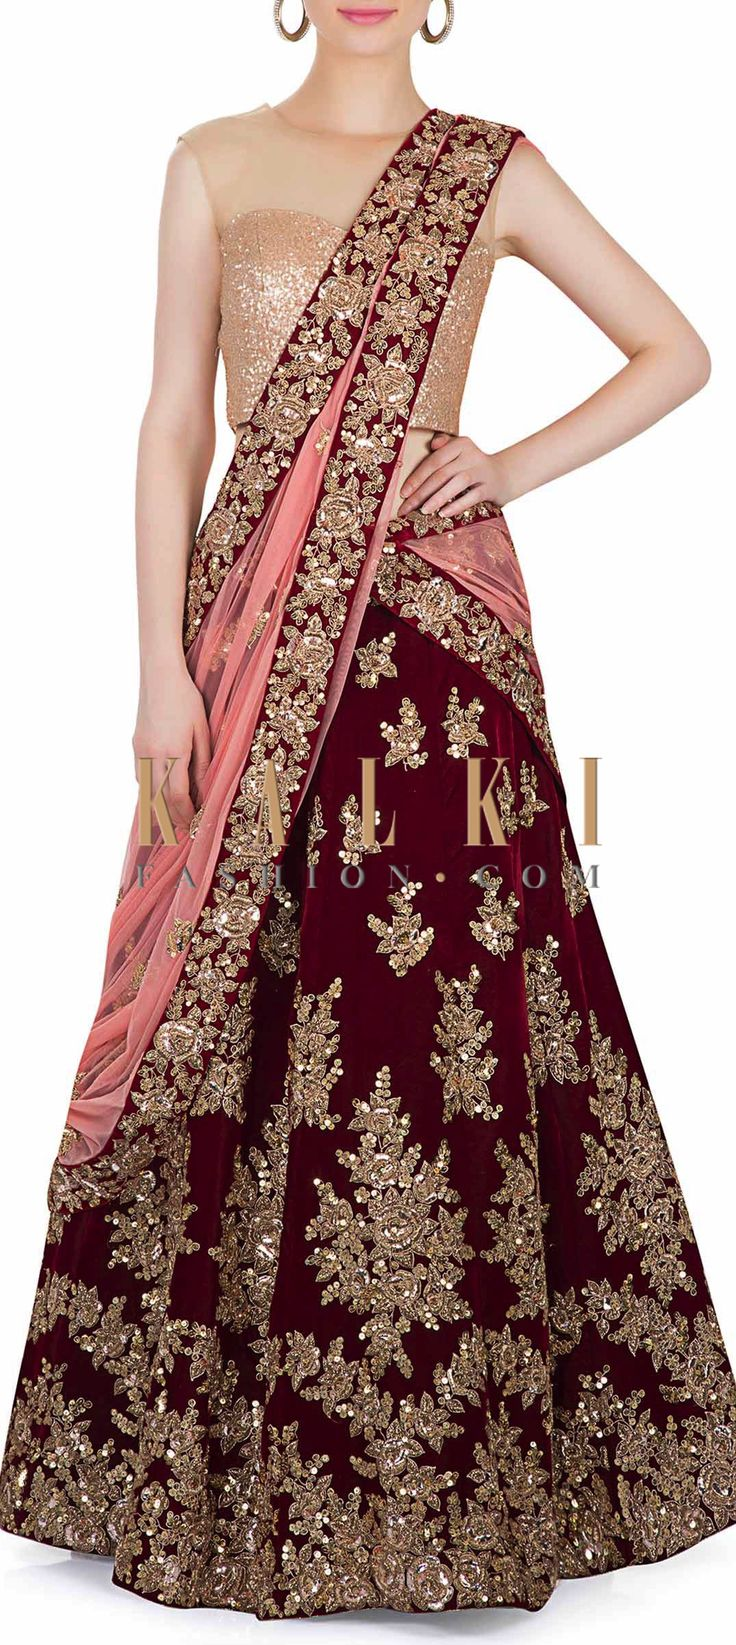 Maroon Velvet Lehenga with Pink Net Dupatta Featuring Intricate Zardosi Work only on Kalki